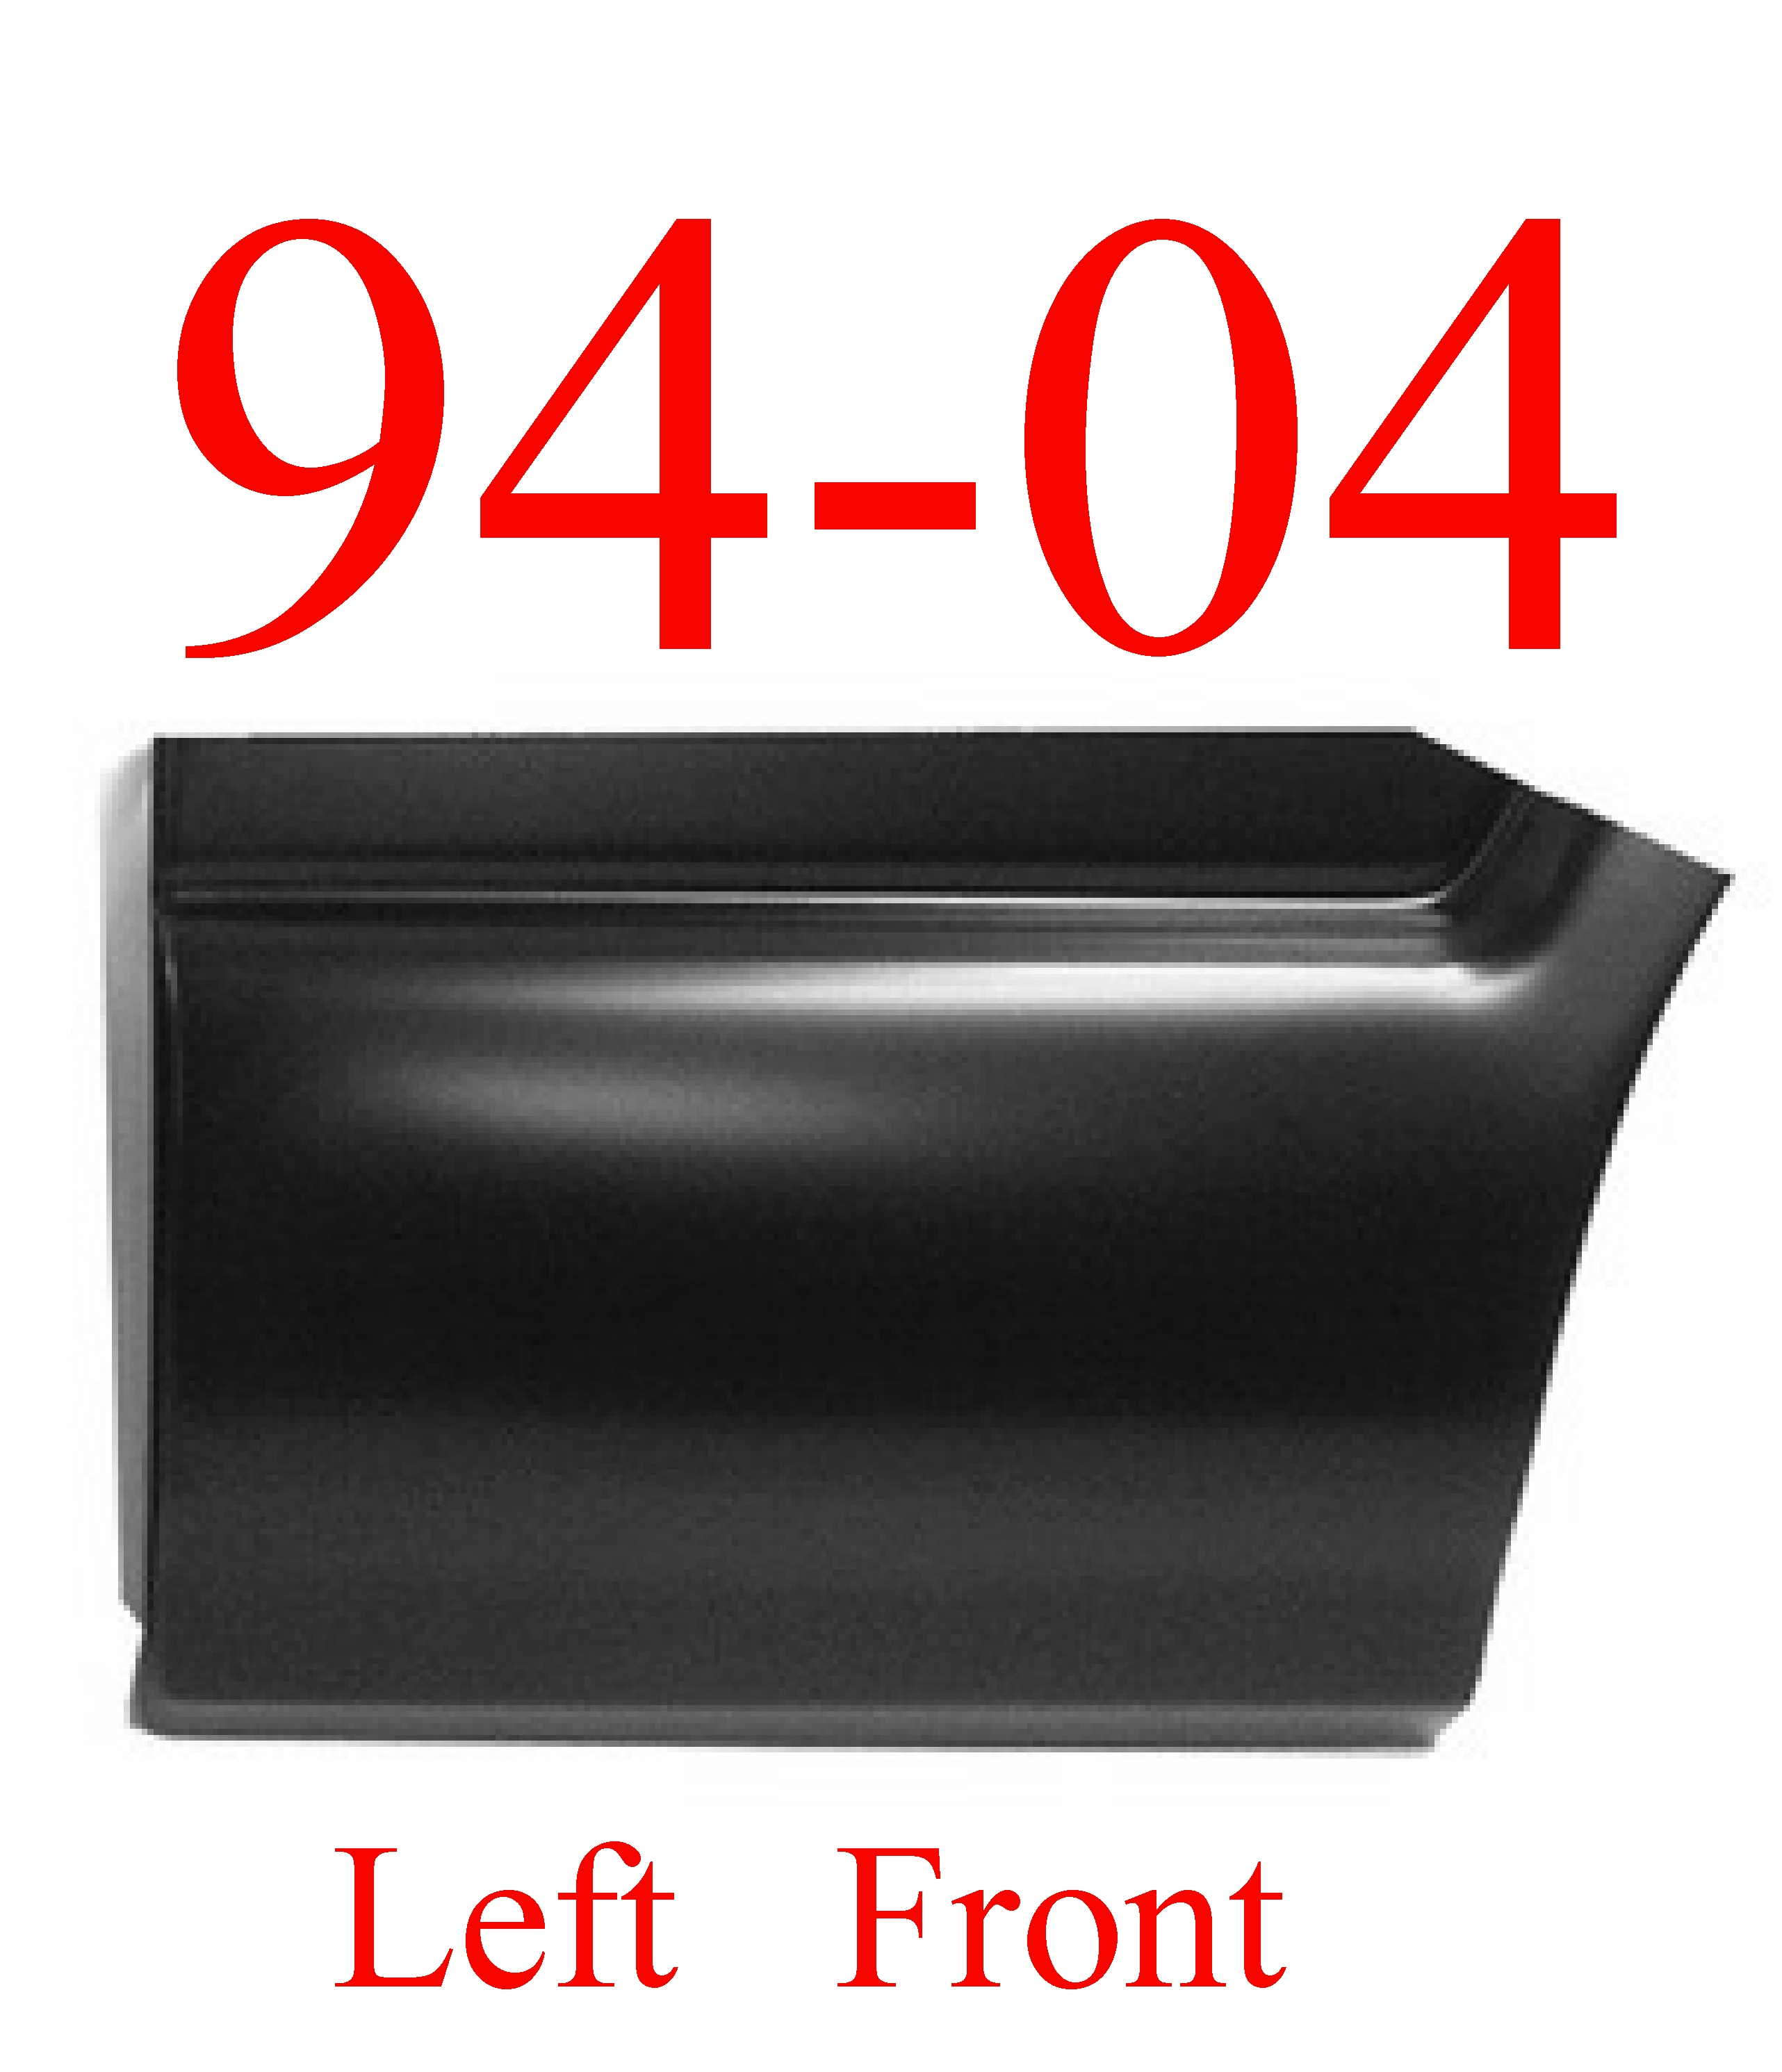 94-04 S10 LEFT Front Lower Bed Patch